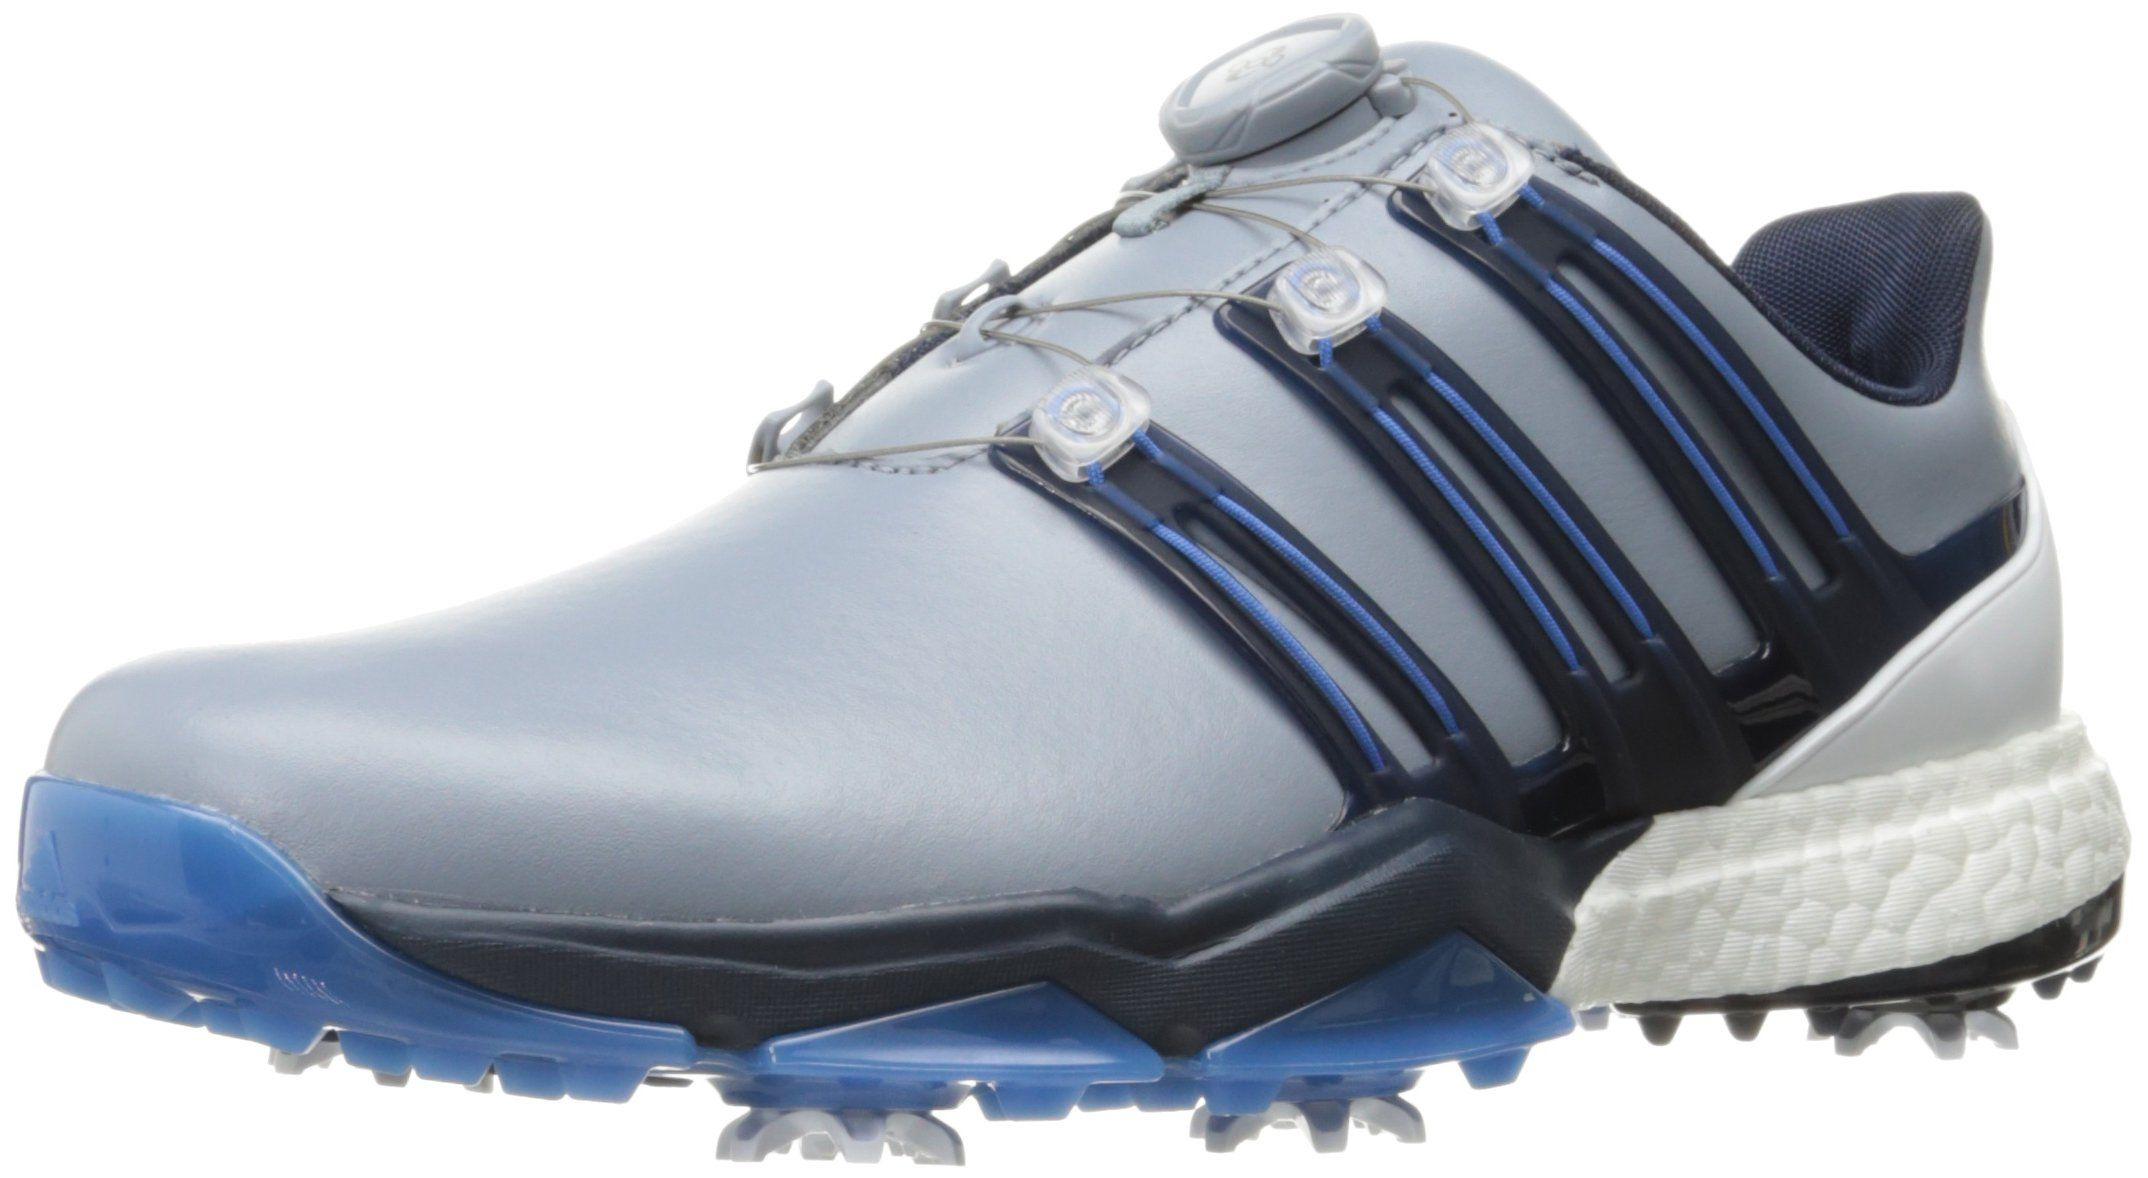 Golf Shoes Adidas Powerband Boa Boost Golf Shoesgrey10 M Us